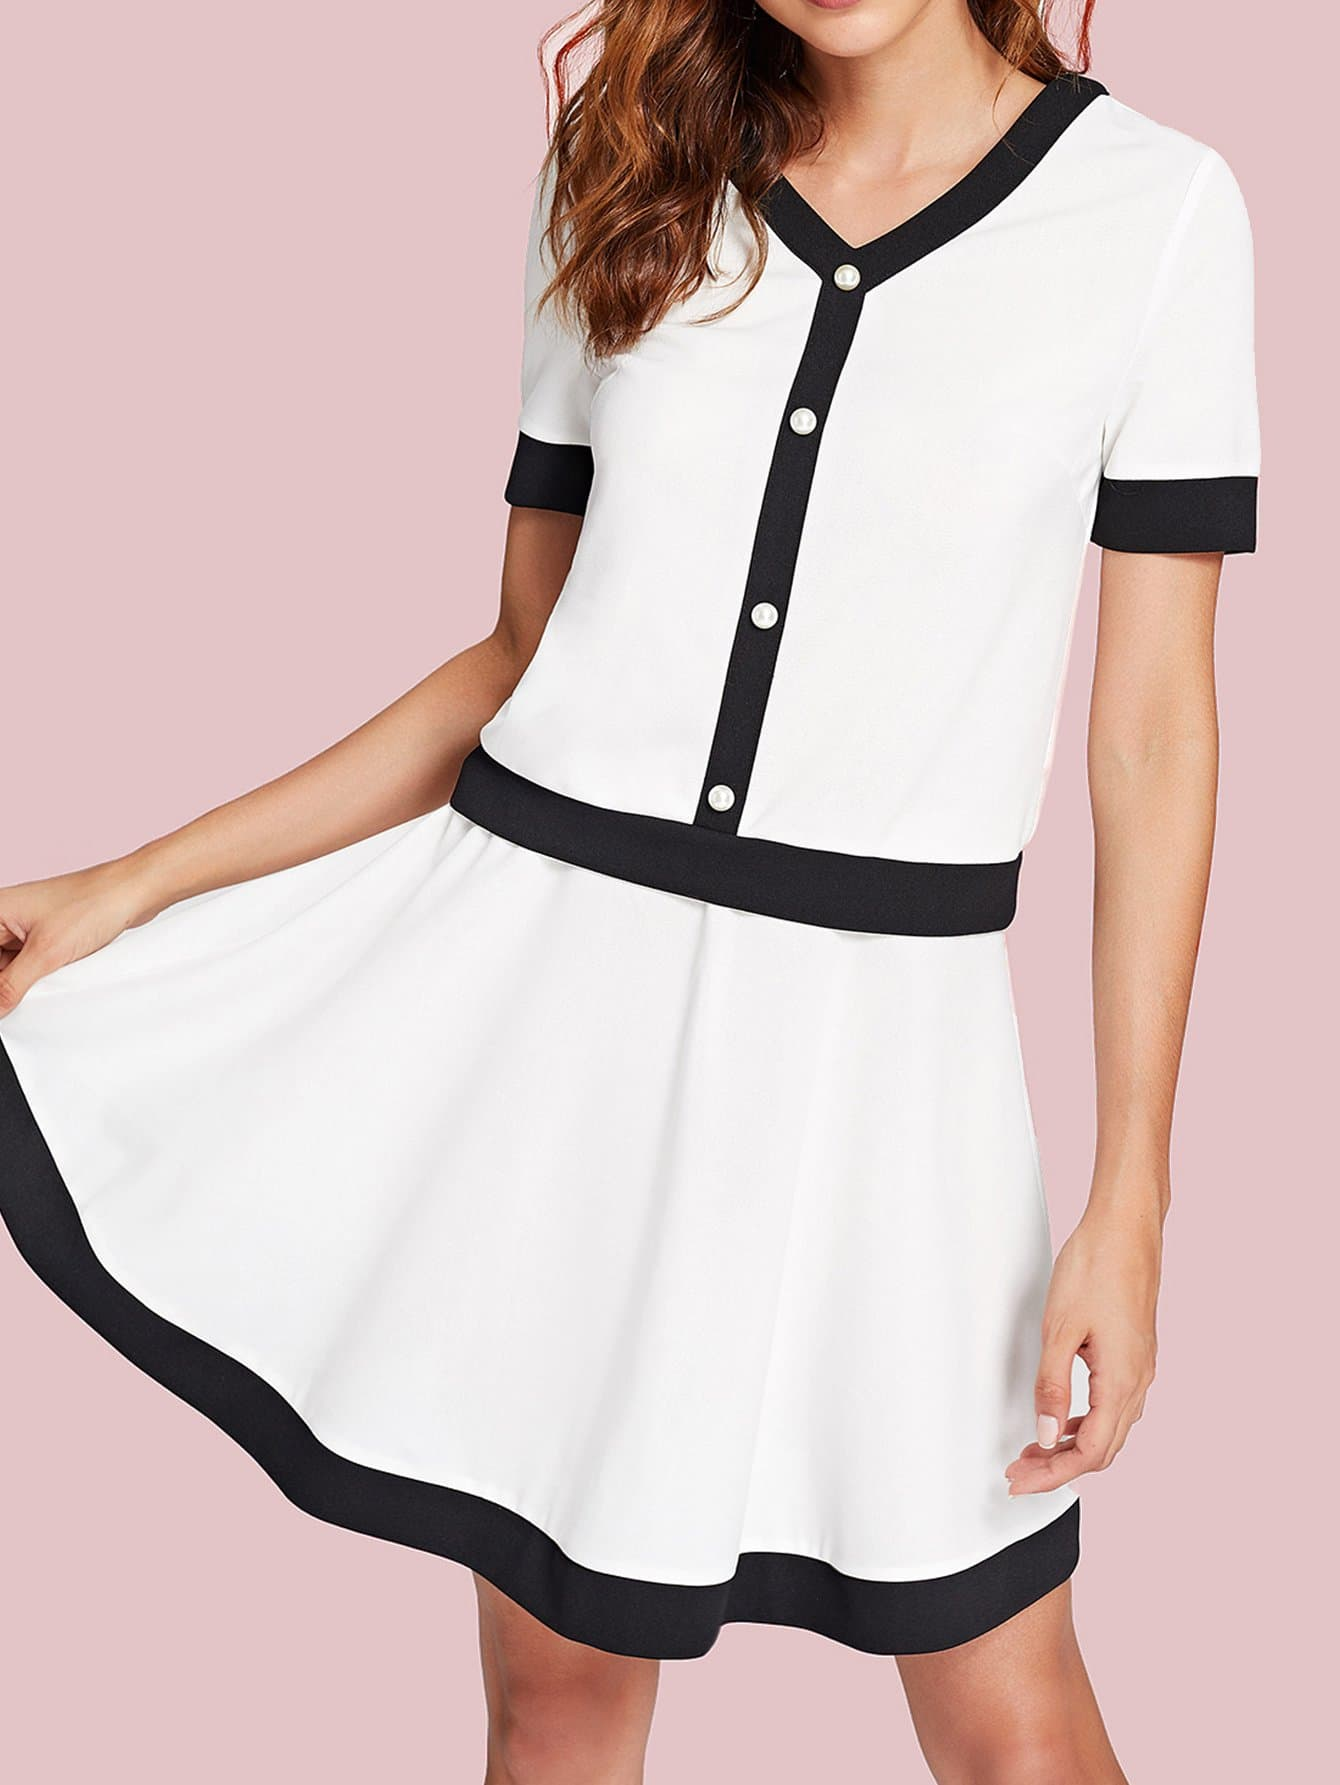 Two Tone Pearl Button Top & Skirt Set 2018 new casual dress sleeveless ruffles top striped skirt suit knitted sweater button two piece women s set party dresses